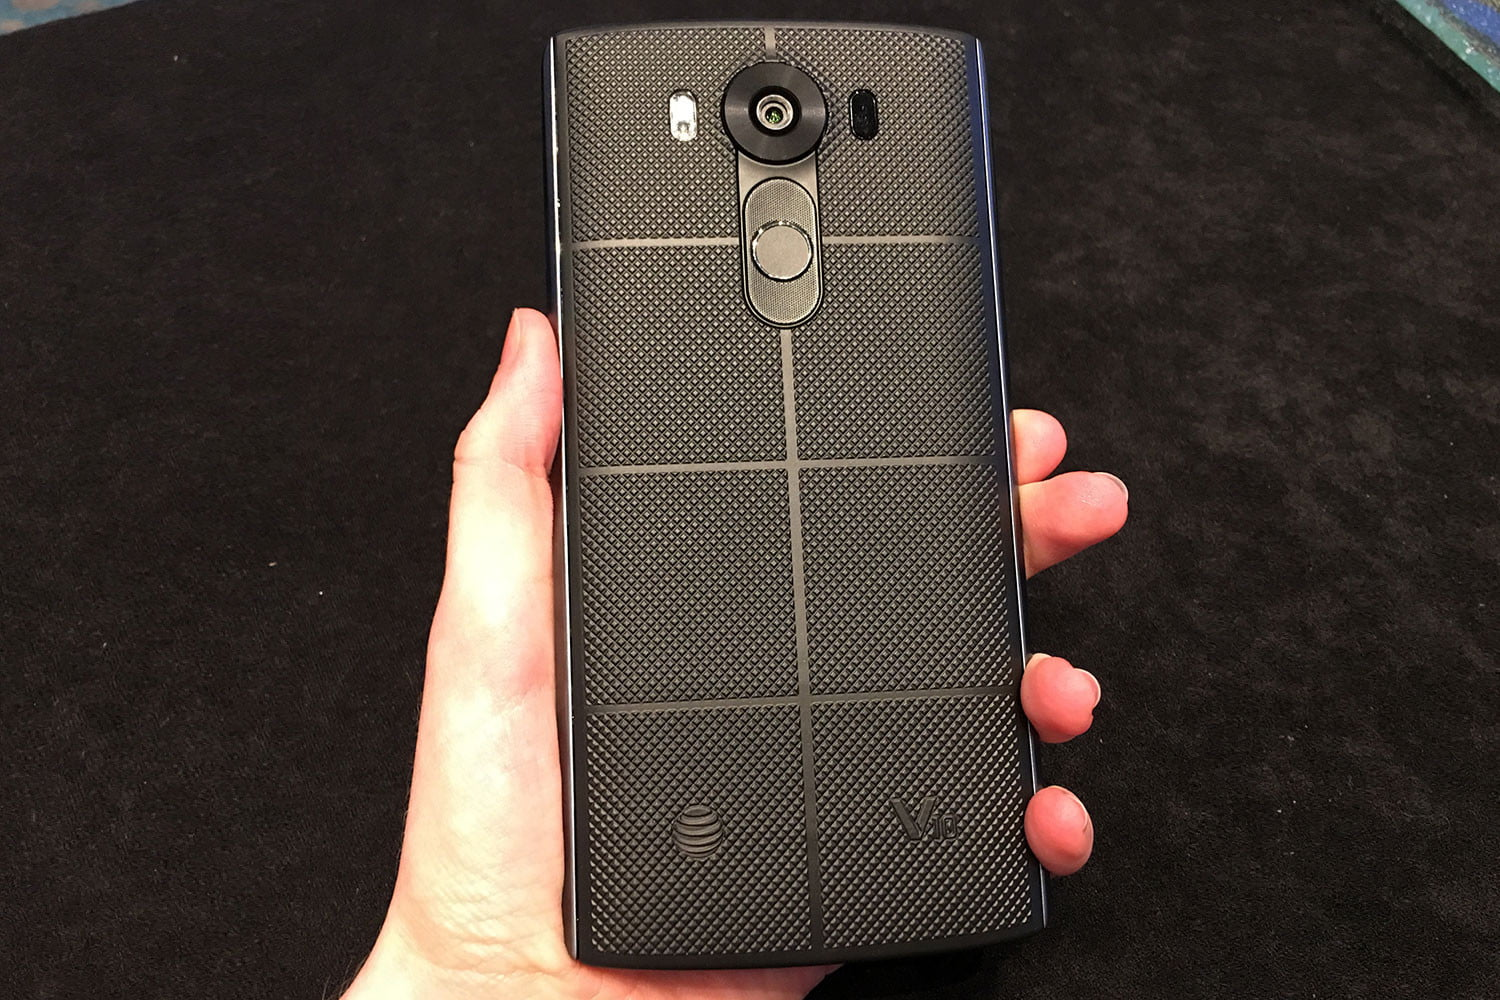 lg-v10-hands-on-back-1500x1000.jpg